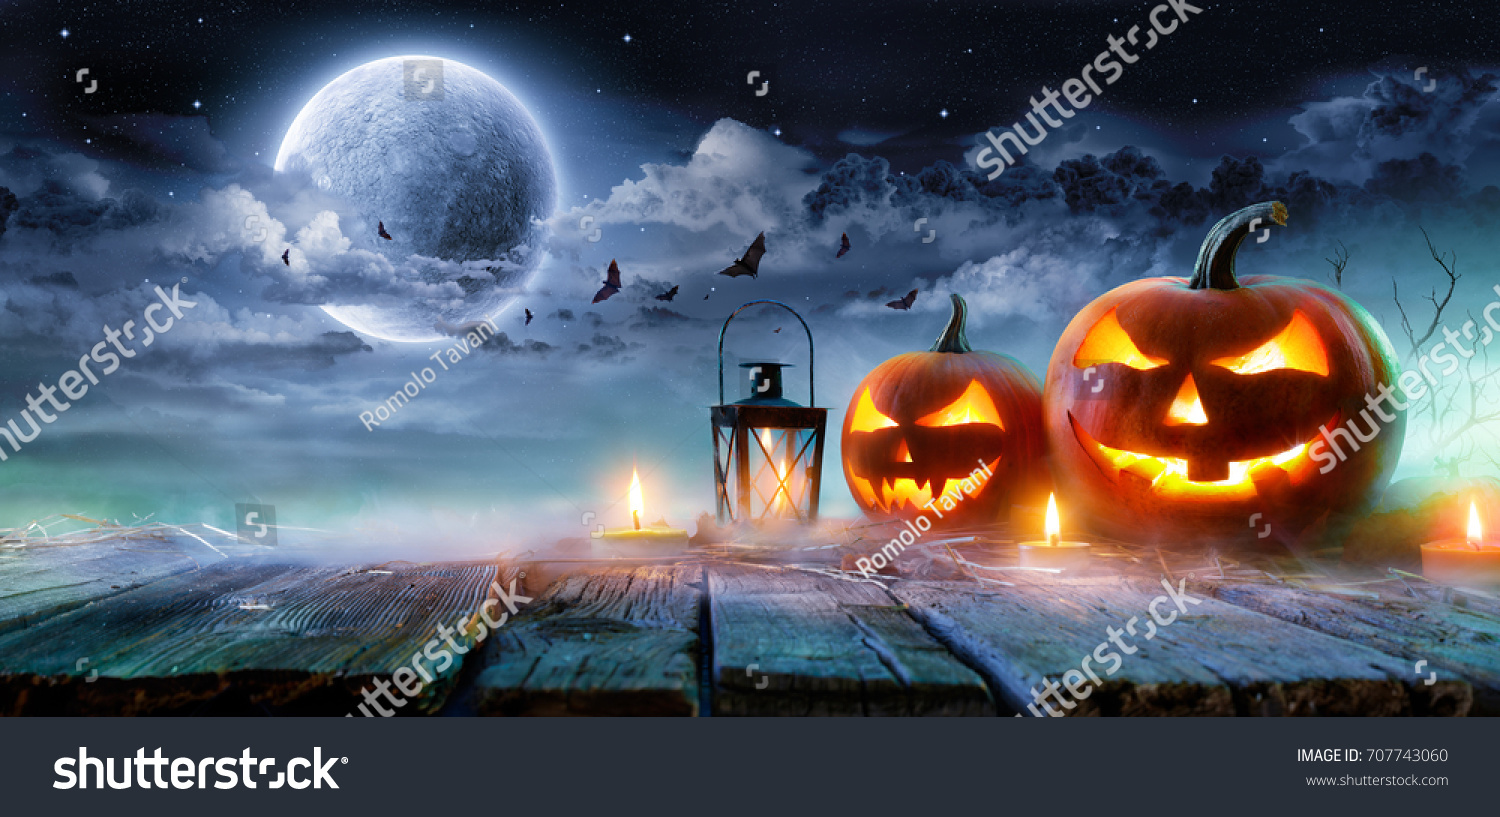 Jack O' Lanterns Glowing At Moonlight In The Spooky Night - Halloween Scene  #707743060